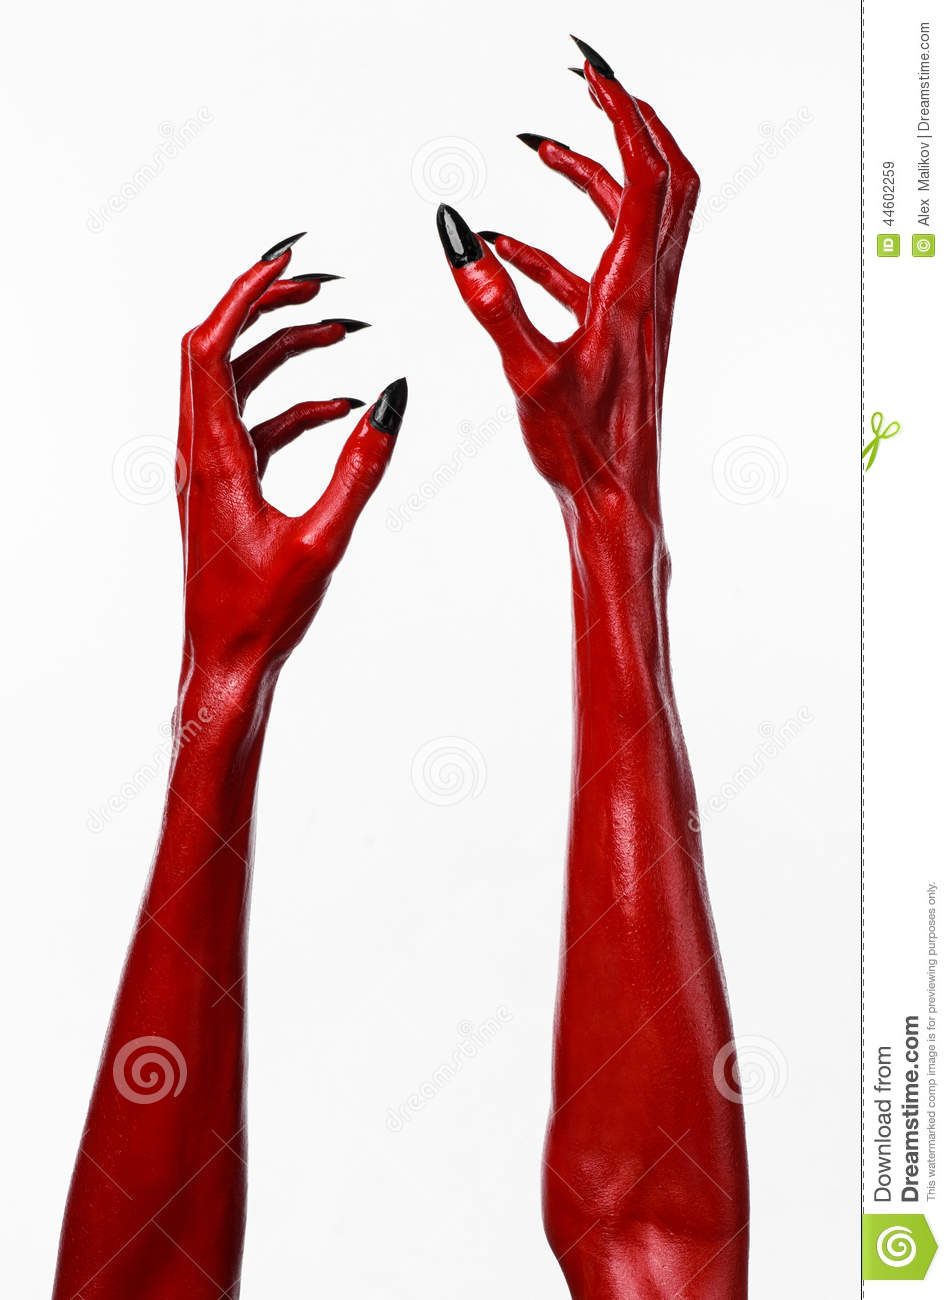 red devil s hands with black nails red hands of satan halloween